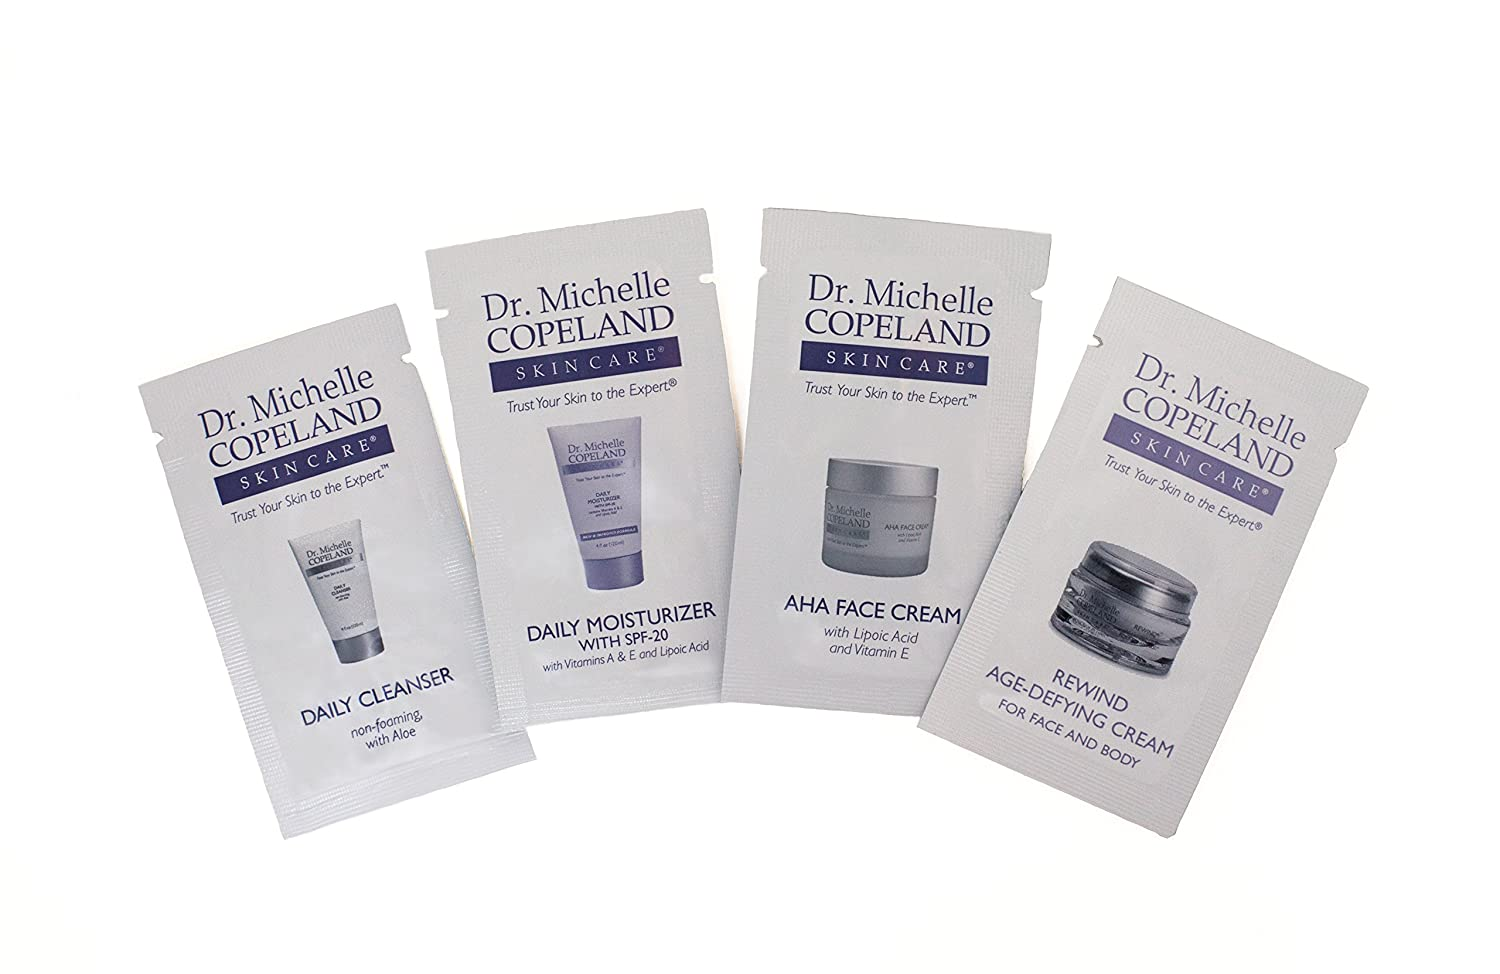 Dr. Copeland Skin Care Product Samples